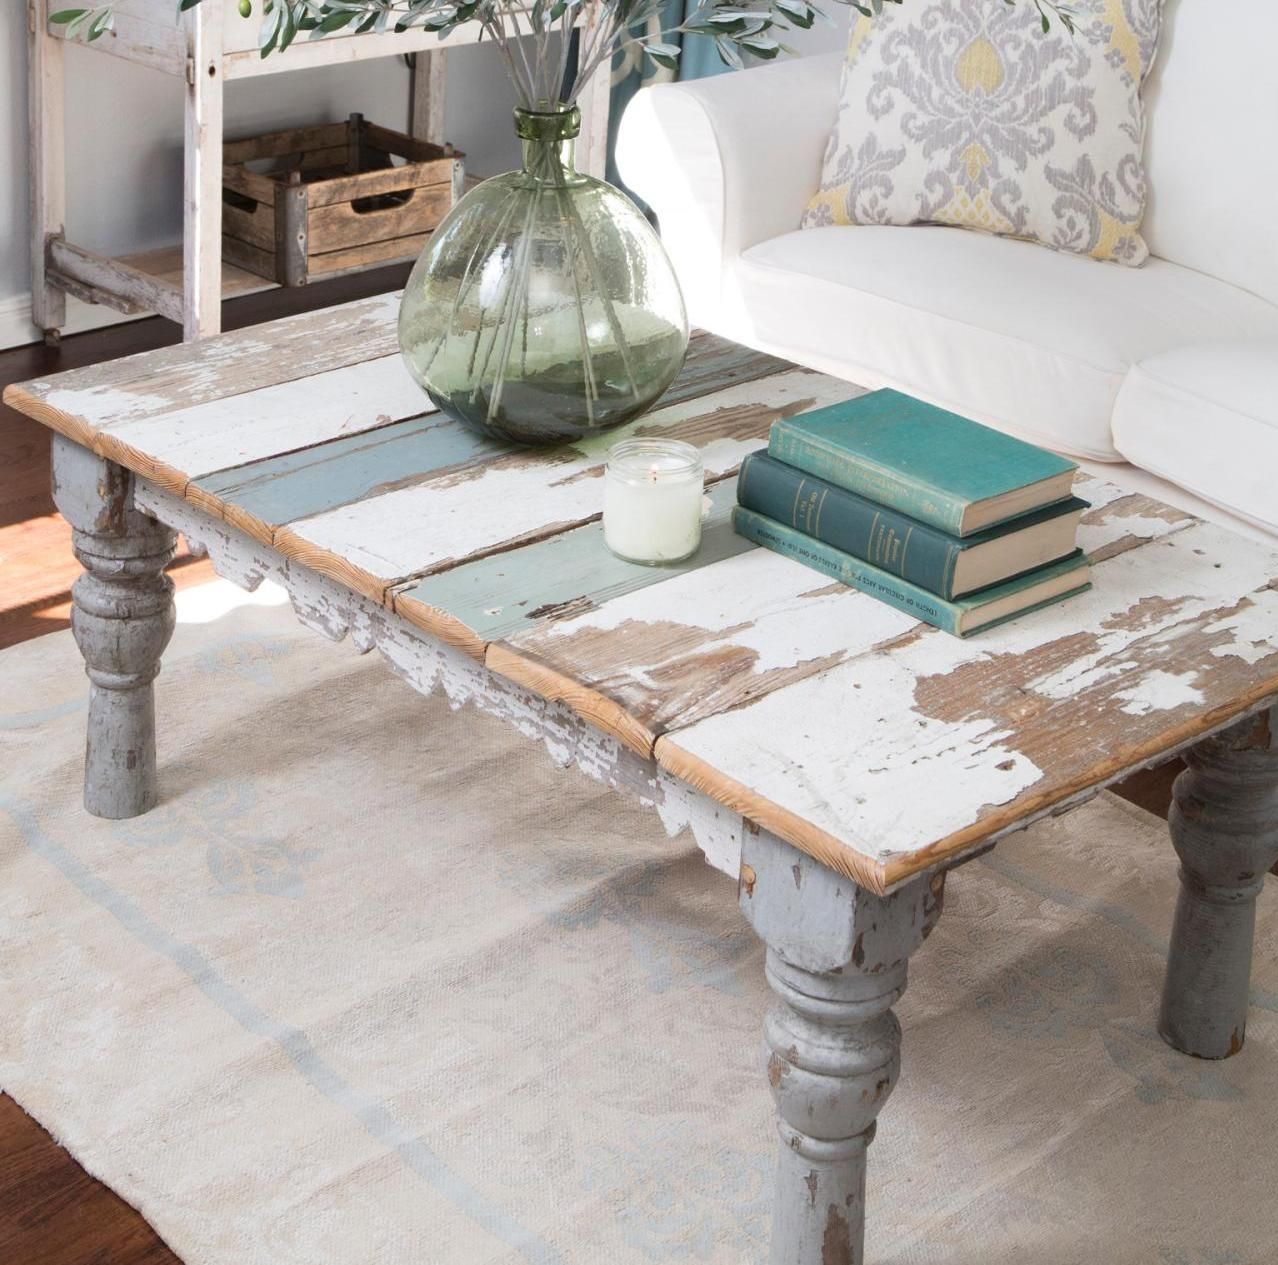 French Country Distressed Coffee Table: Distressed Painted Coffee Table